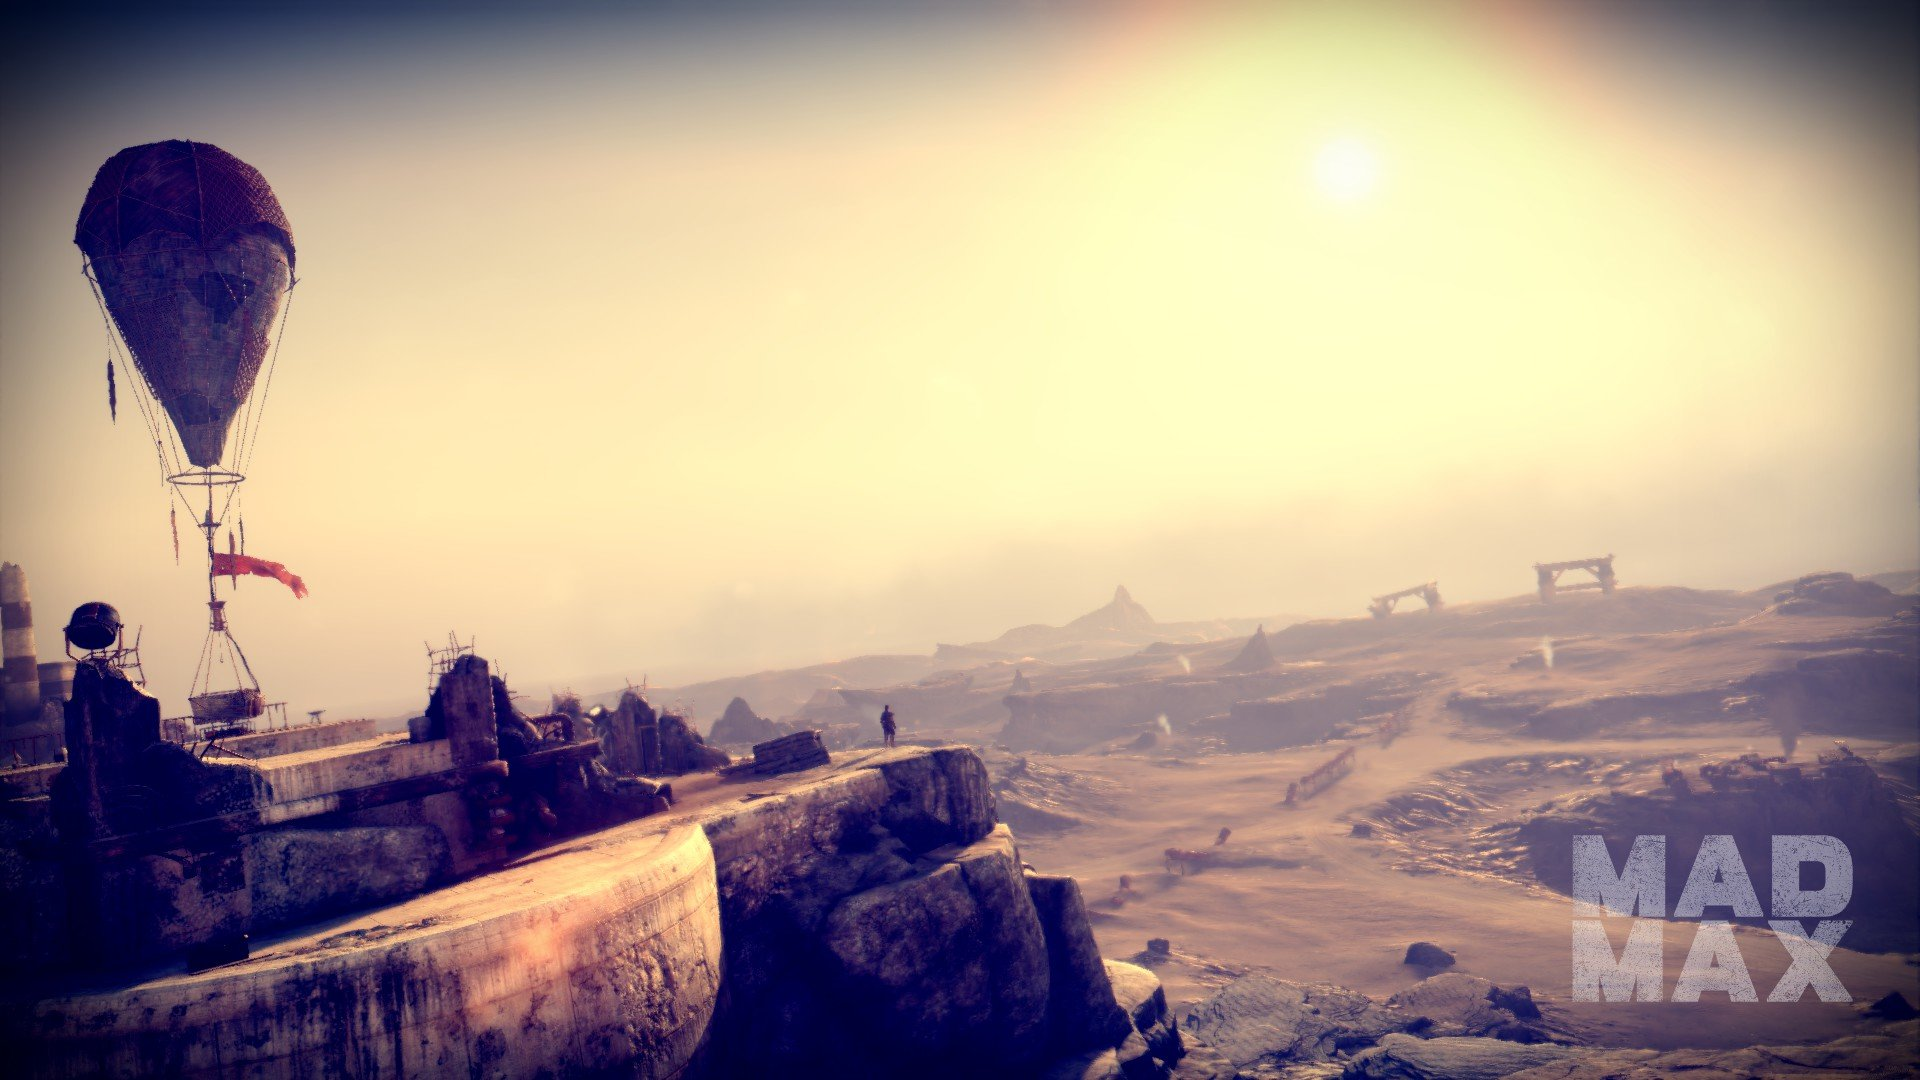 Download Full Hd 1080p Mad Max Video Game Pc Wallpaper Id315098 For